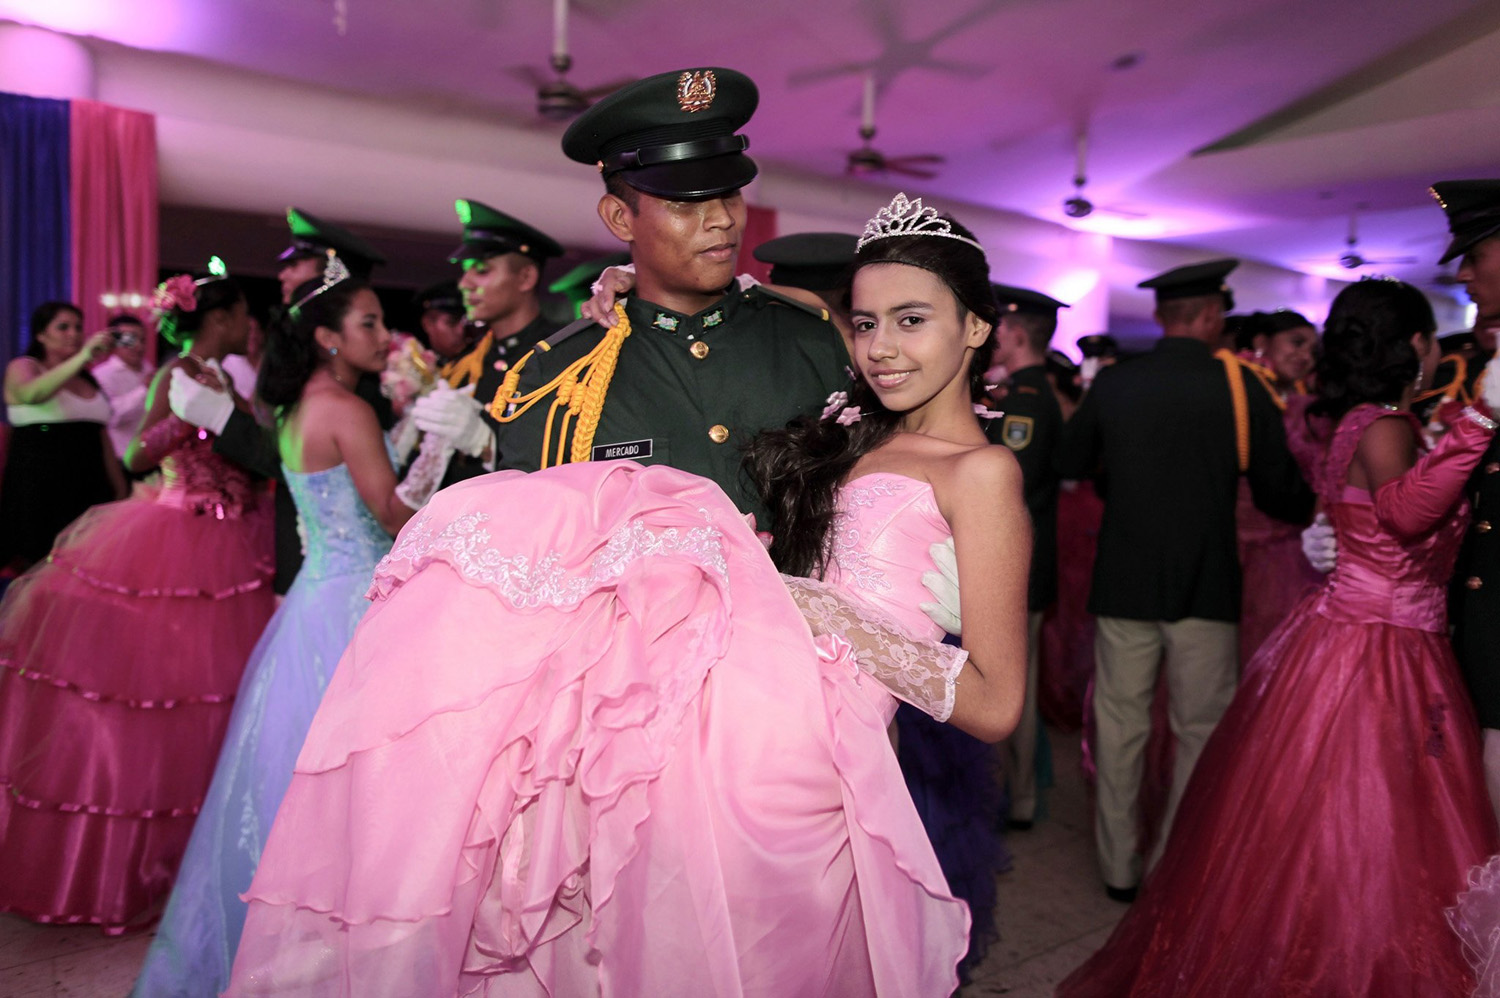 A cancer patient dances with a cadet from Nicaragua's Military Academy during her  Quinceañera  (15th birthday) party at a hotel in Managua, Nicaragua on Sept. 20, 2014.